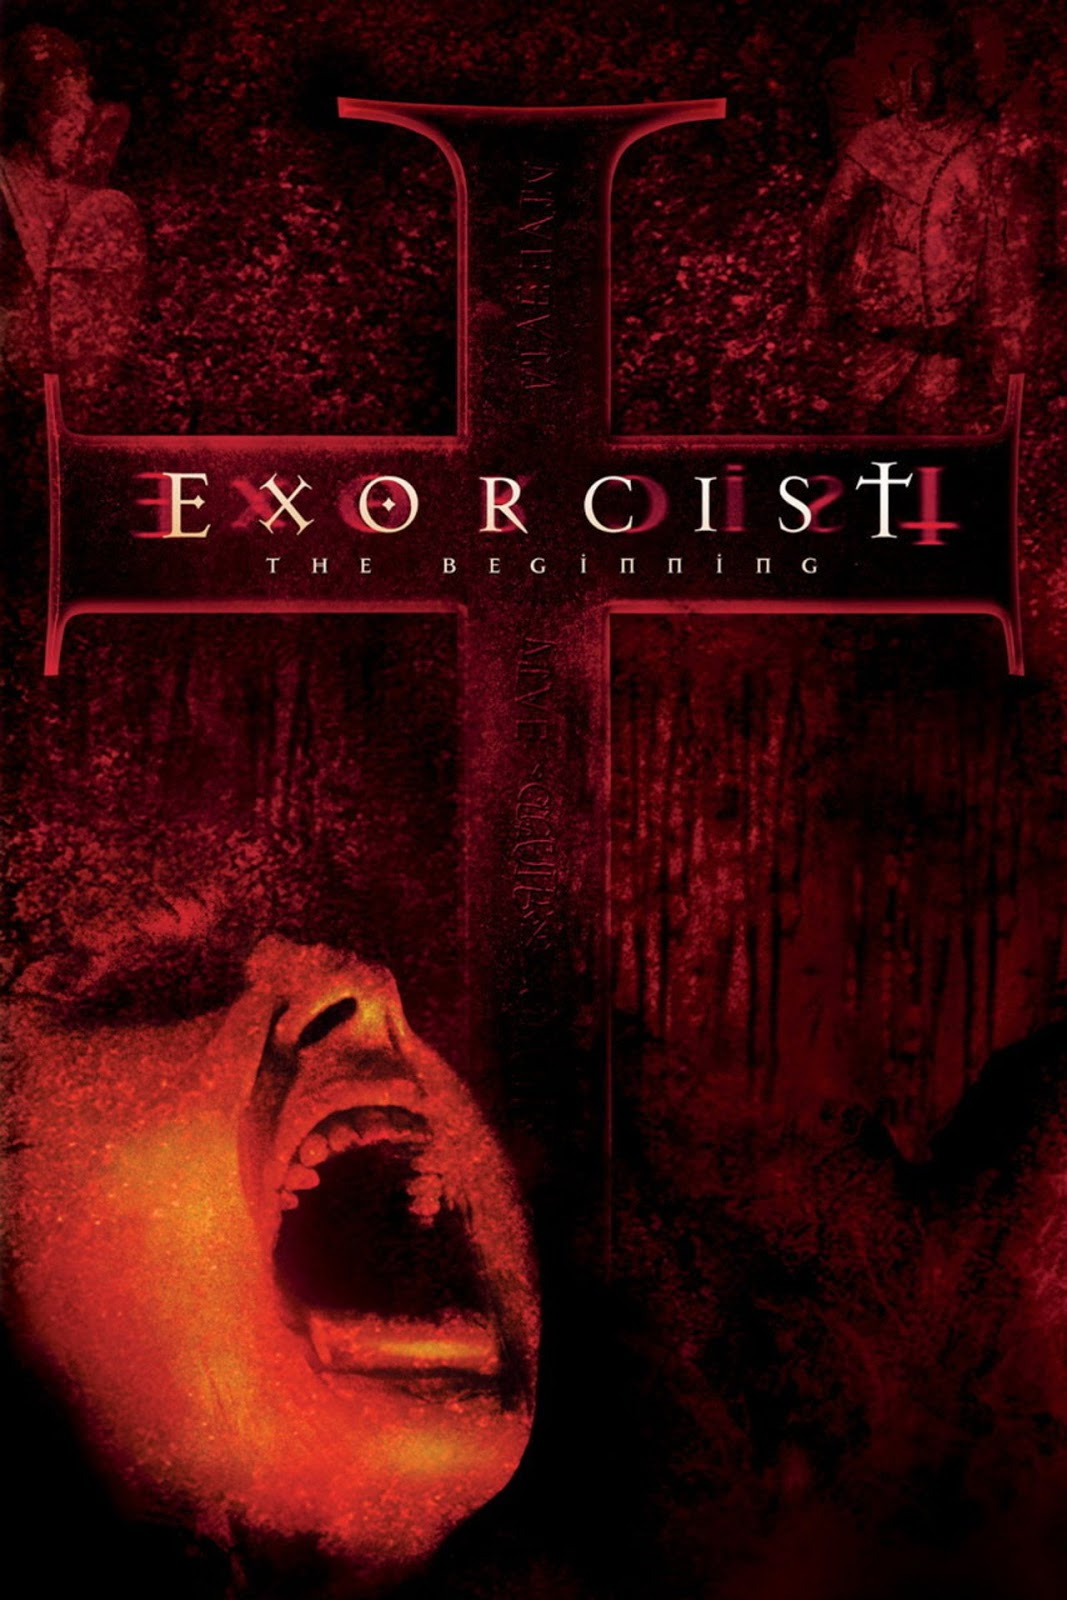 Film Excess Exorcist The Beginning 2004 Or The Exorcist Back To Africa